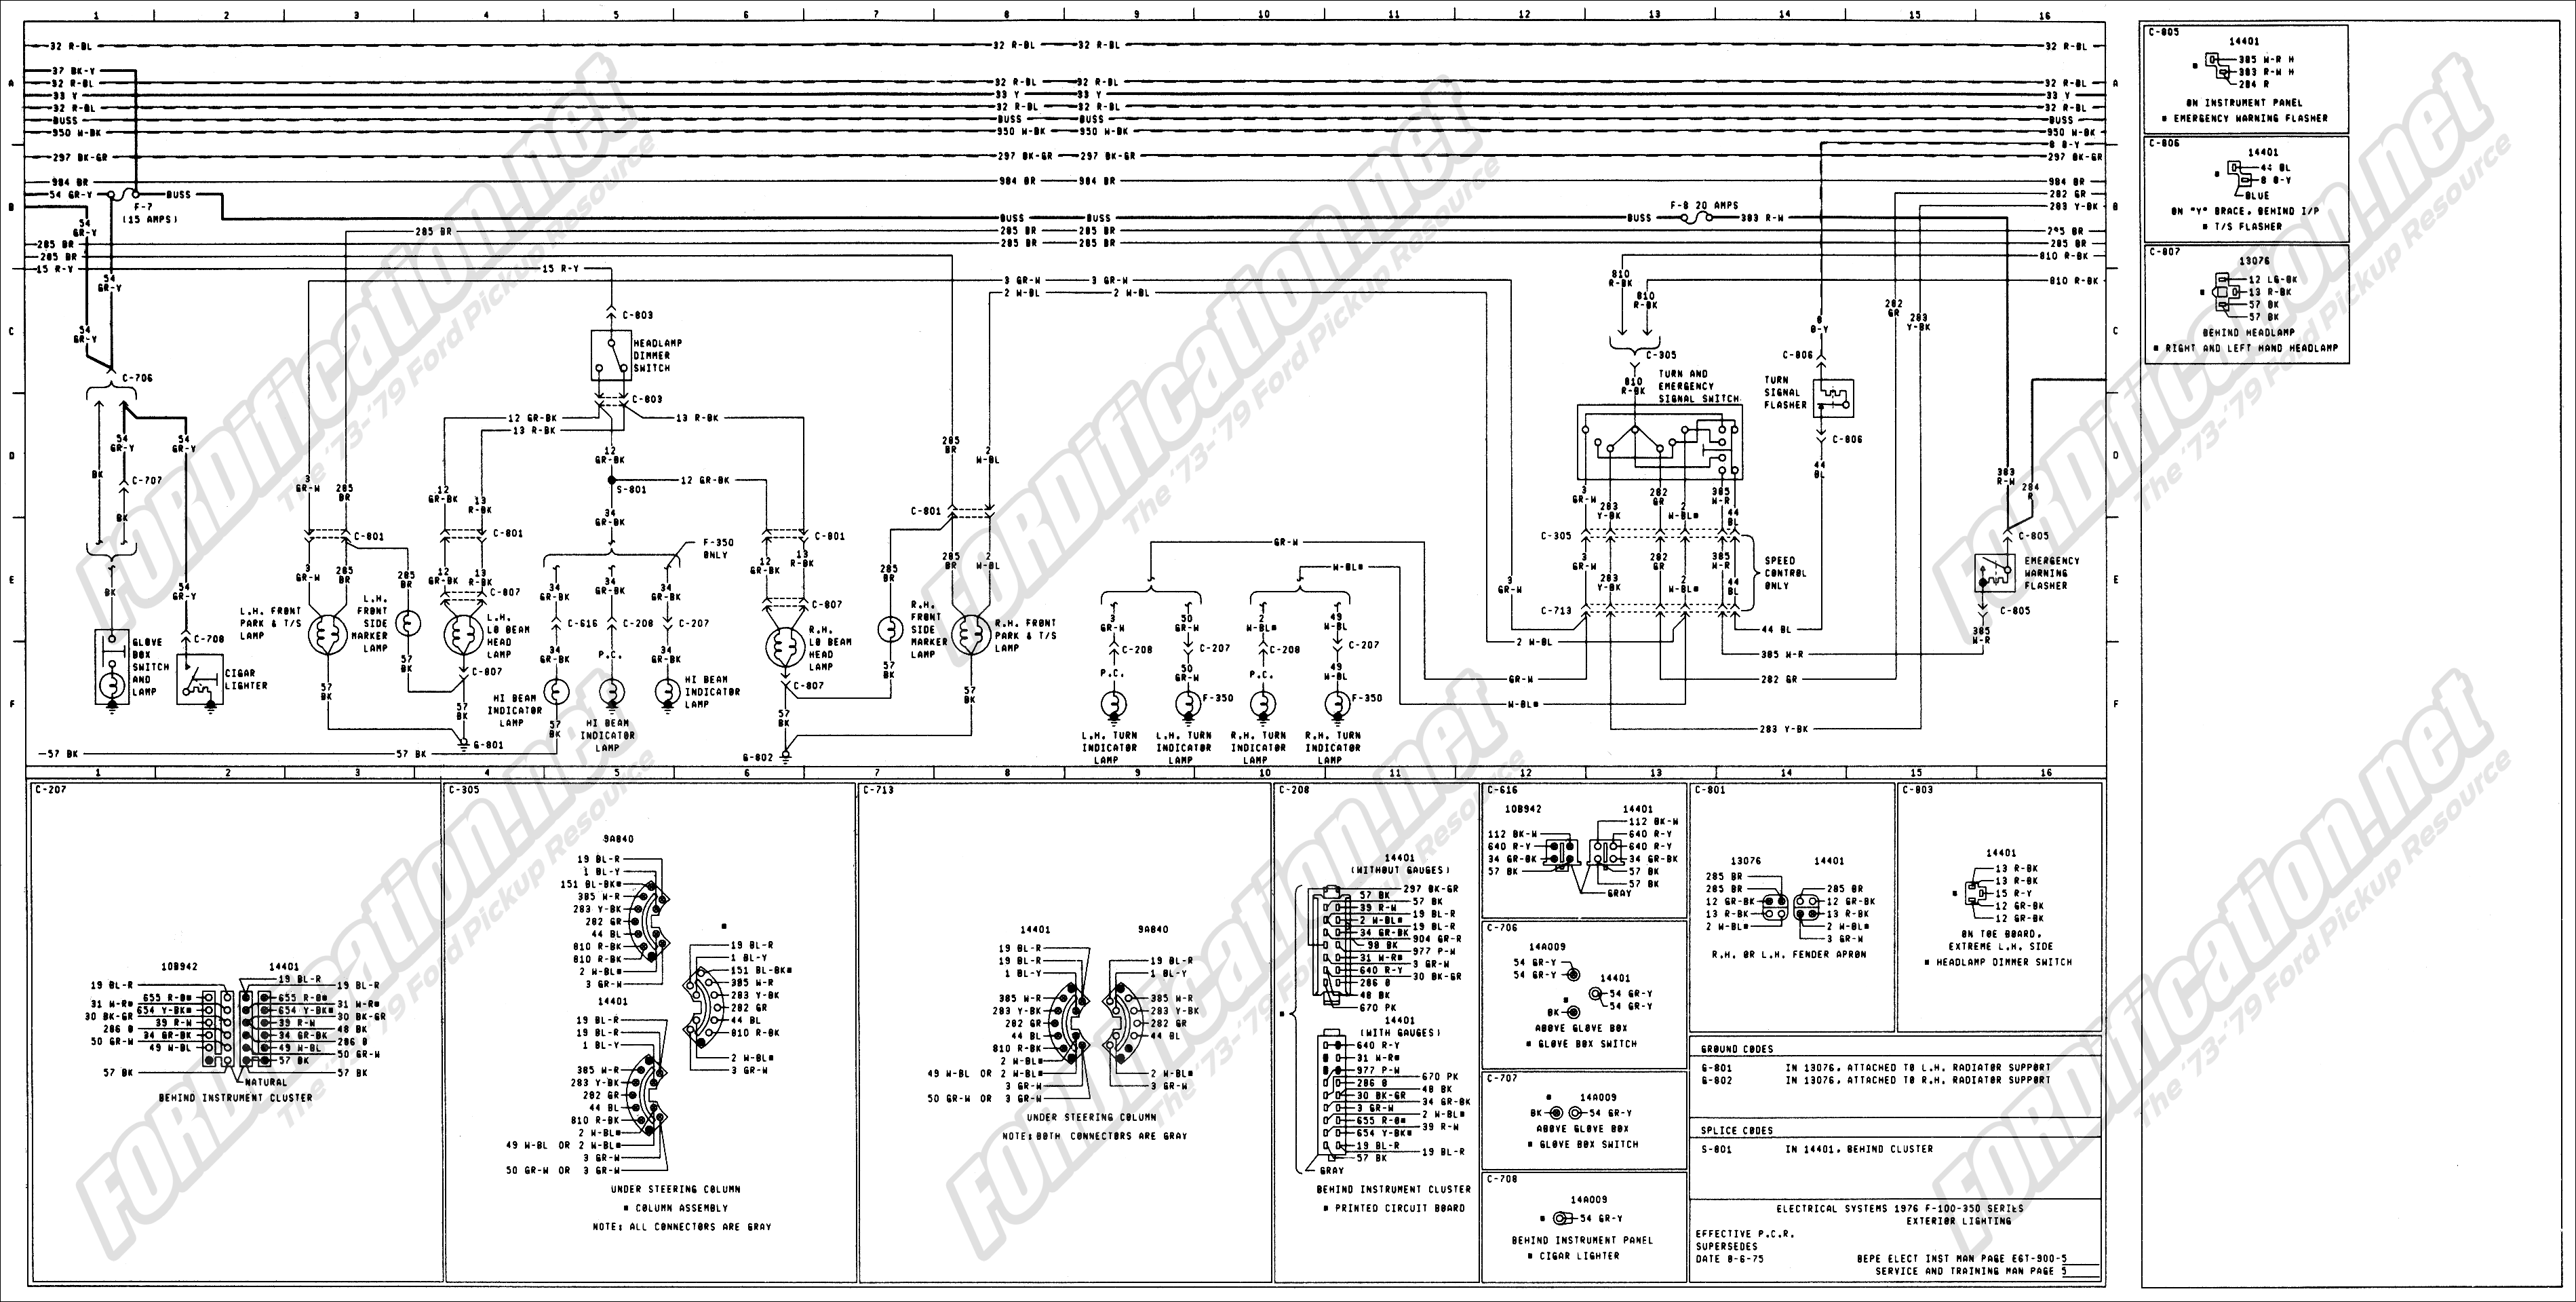 96 F150 Engine Diagram Just Wirings 1996 Ford F 150 77 F250 Wiring Schematic Rh Theodocle Fion Com 2002